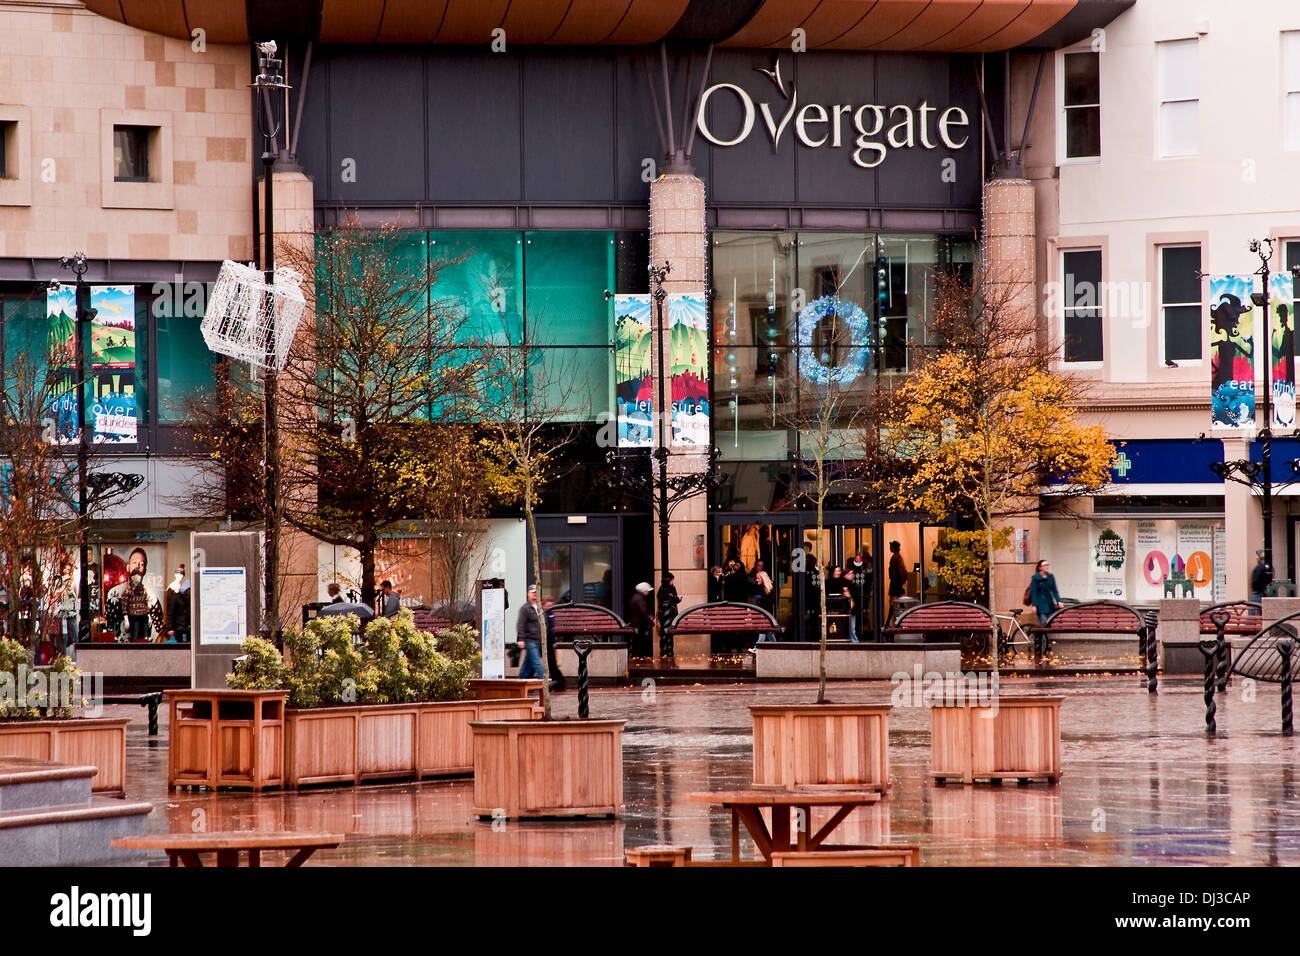 Shoppers standing at the entrance of the Overgate Shopping Centre sheltering from the November Rain Showers in Dundee, UK - Stock Image